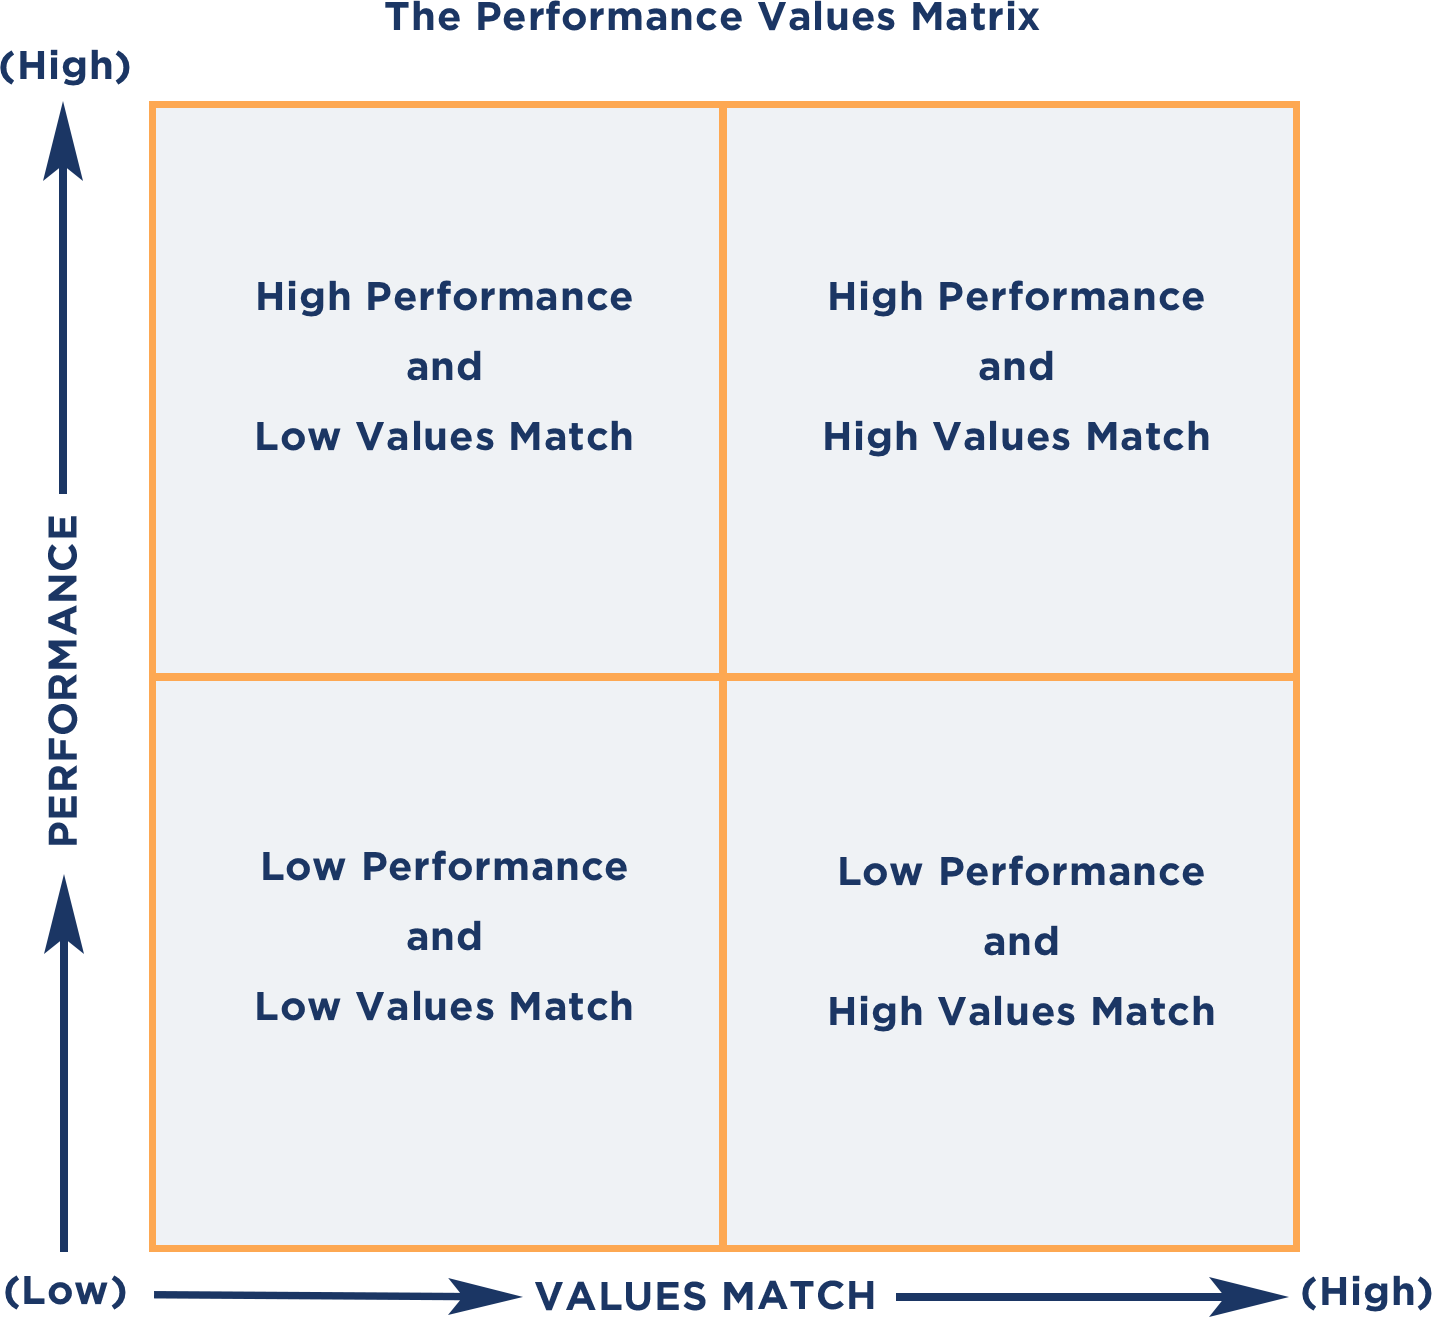 Performance-Values Matrix Model